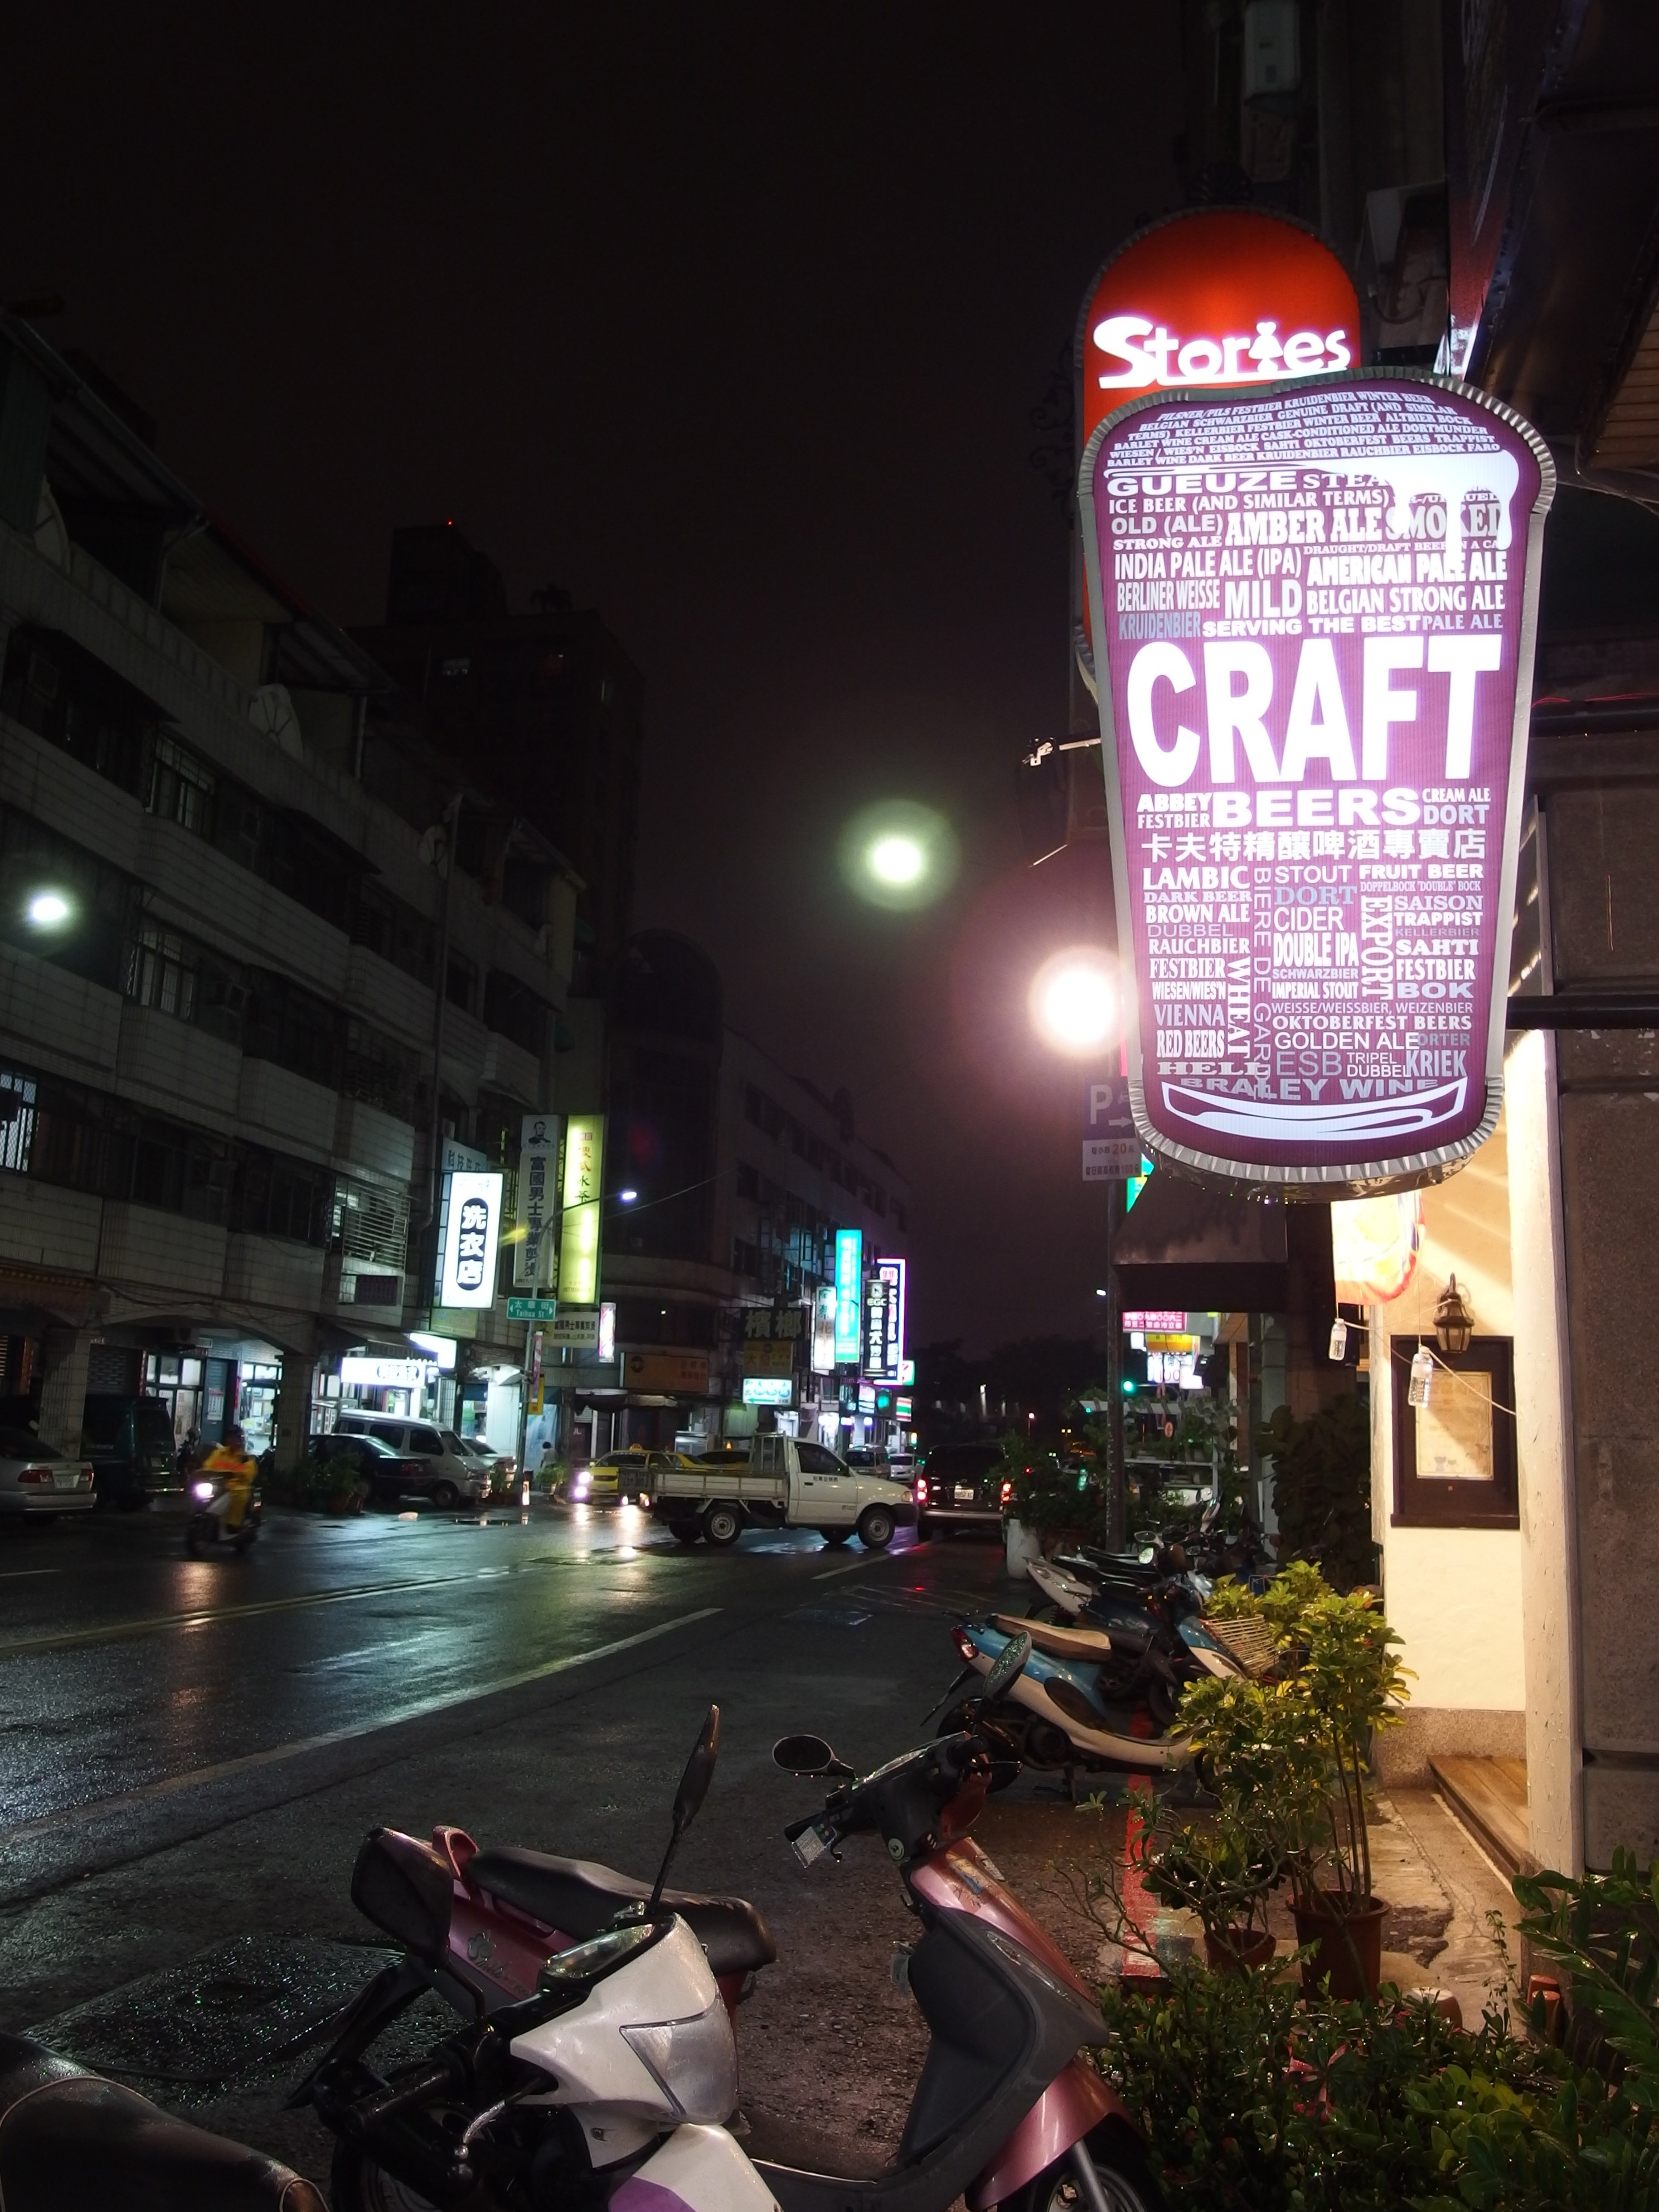 Craft Taiwan Beer Shop Outdoors